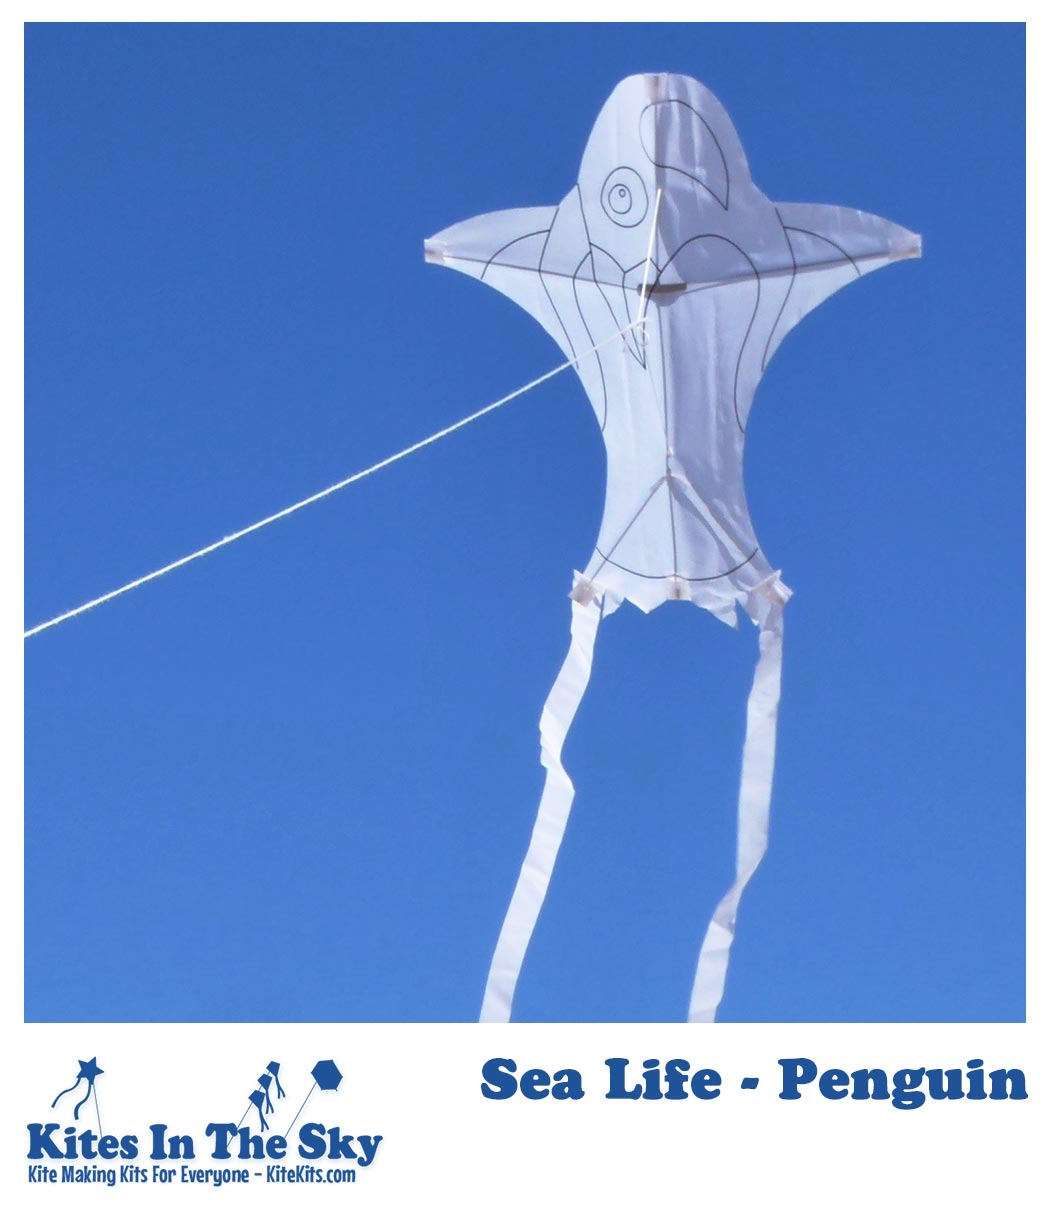 Sea Life - Penguin Kite Kit (1pk-4pk) - Kites In The Sky